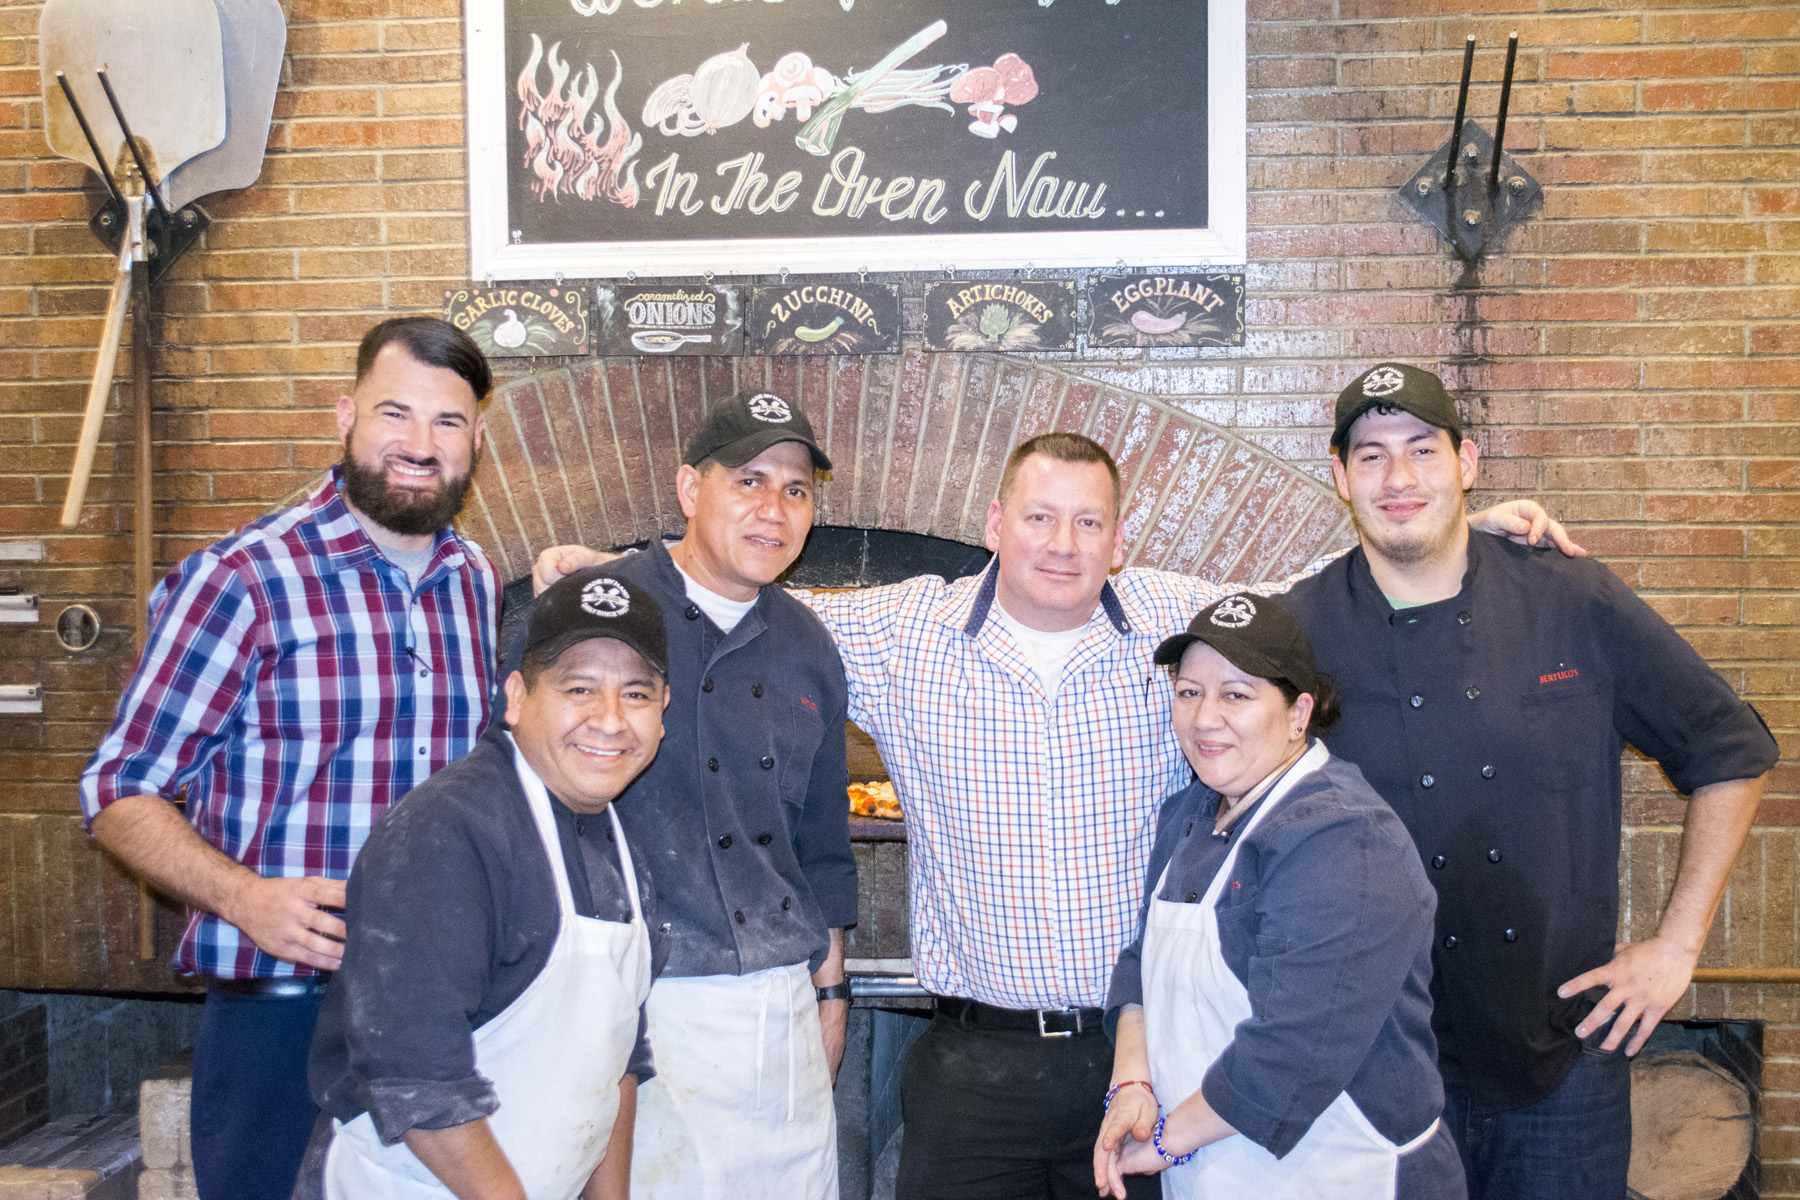 General Manager Corey Grossman, third from right, and the staff in front of the pizza oven at Bertucci's in Melville.   Long Islander News photos/Connor Beach